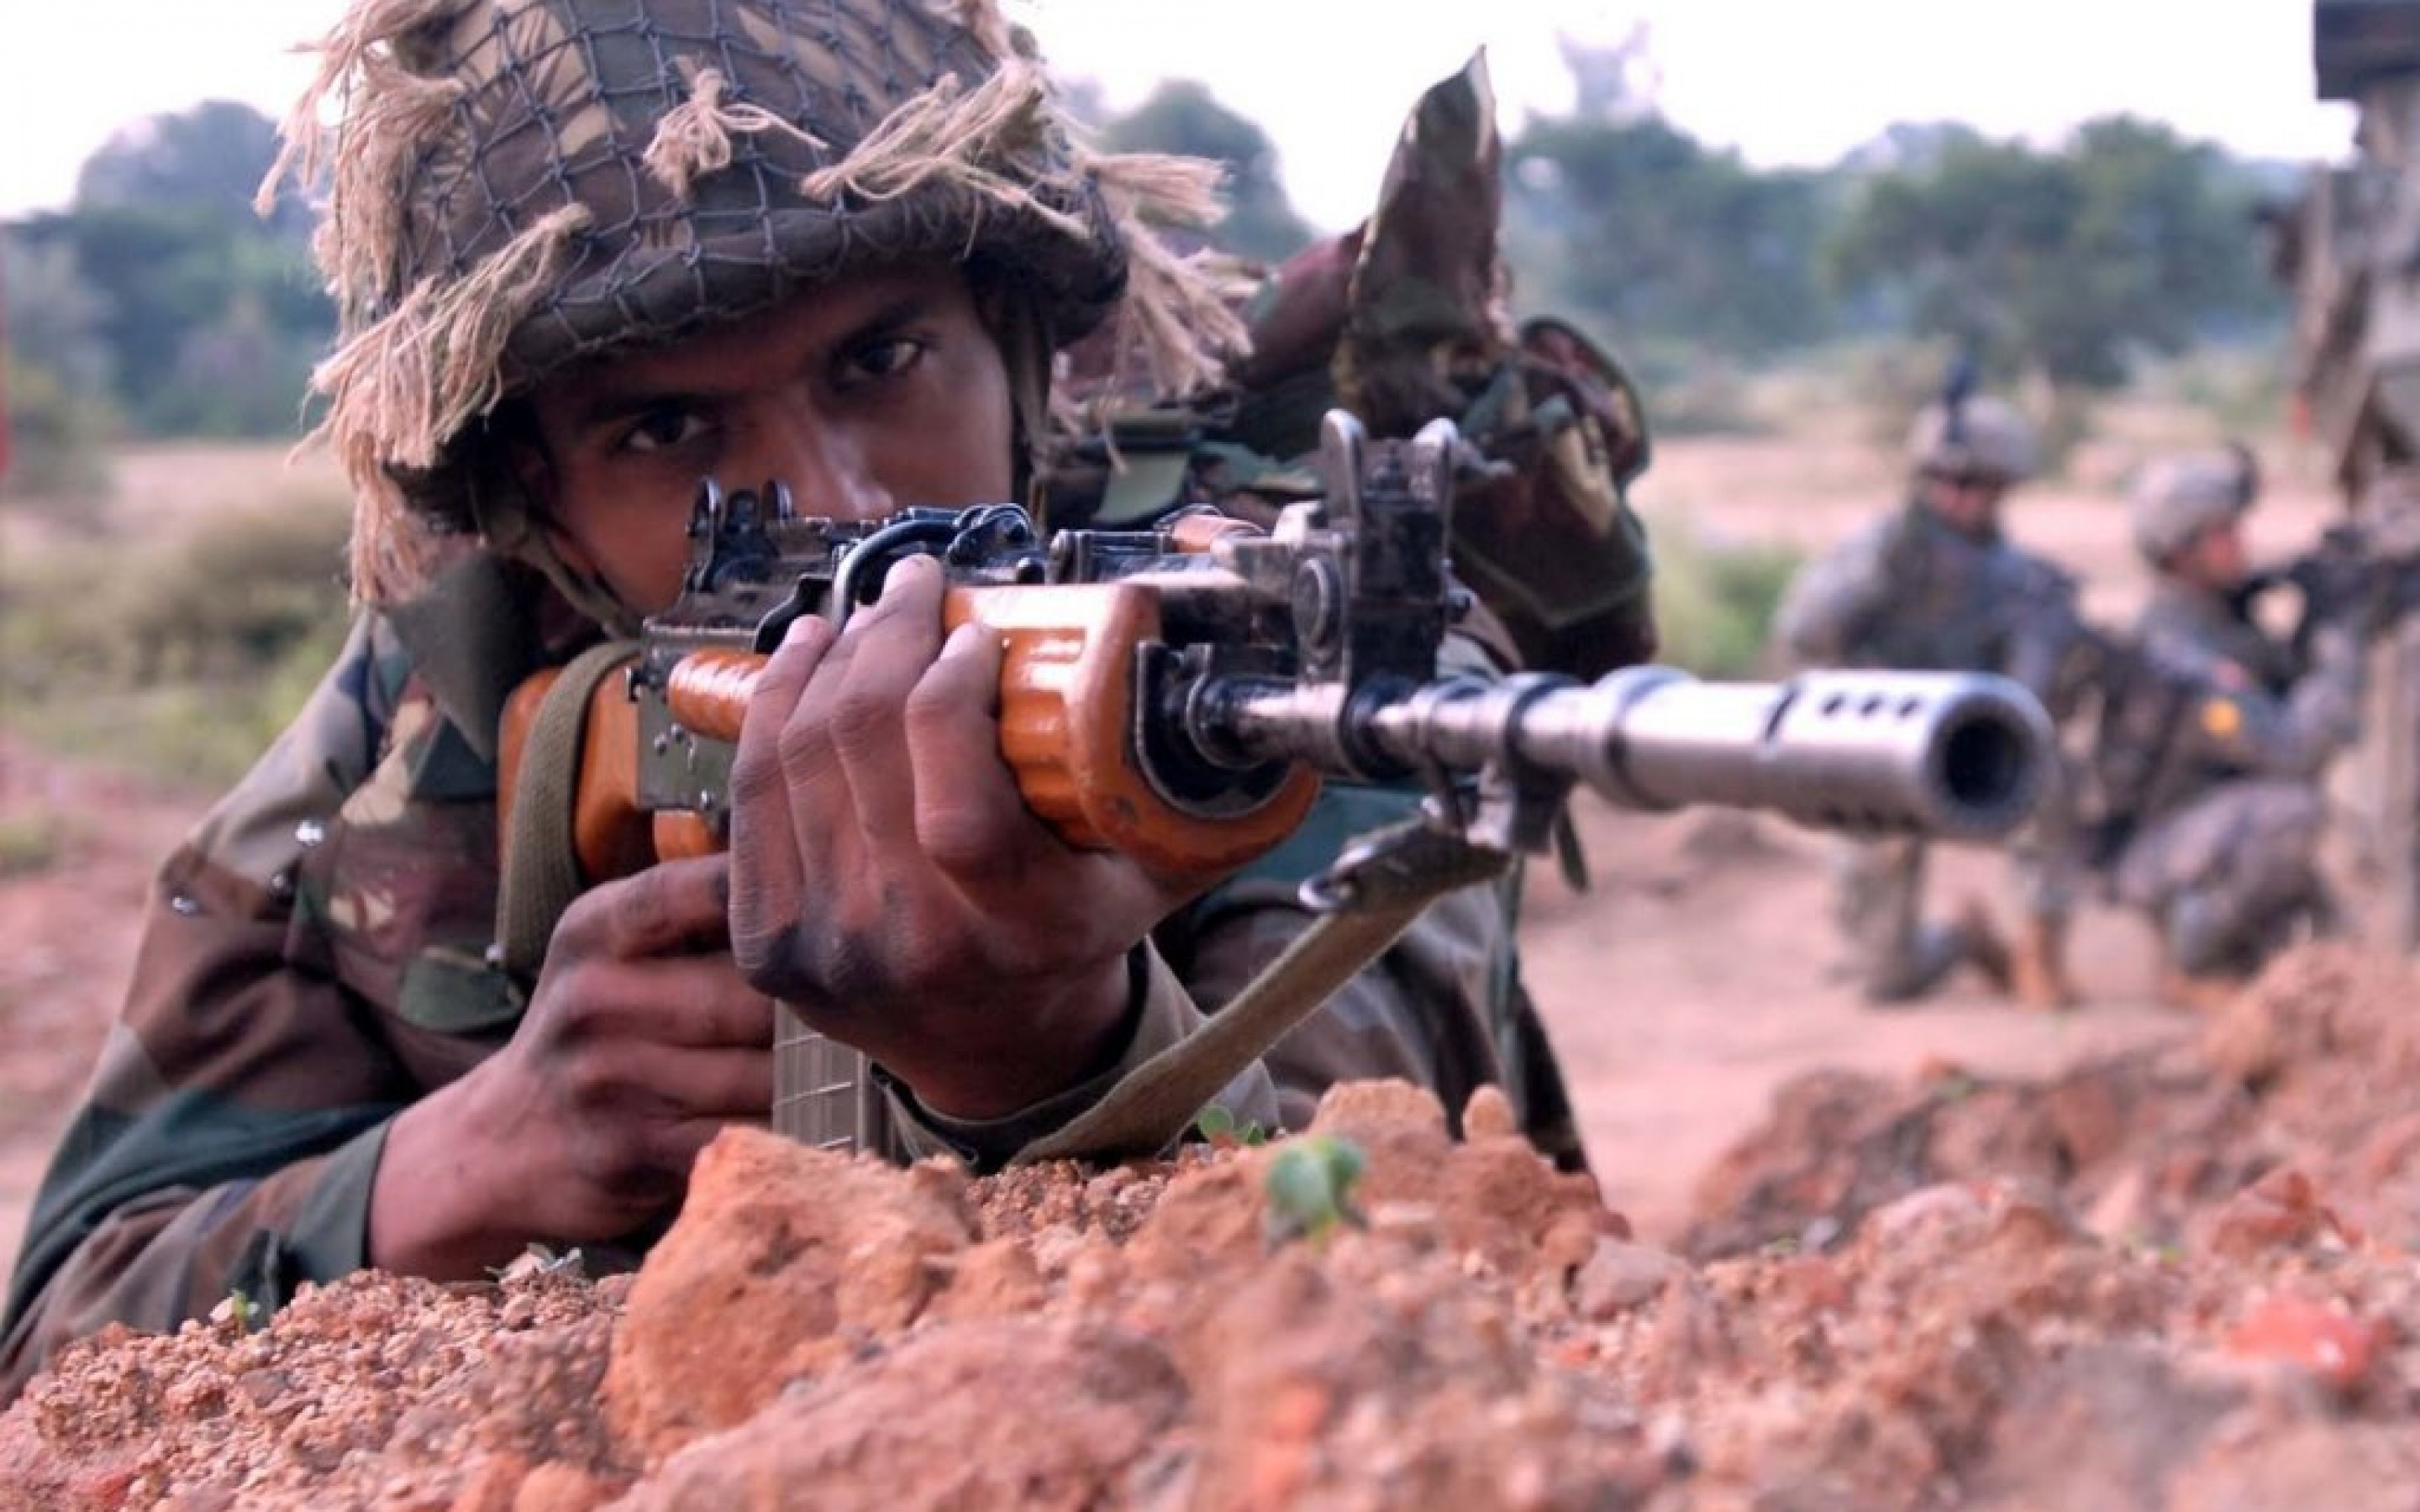 2880x1800 Indian Army HD Wallpaper - HDWallpapersin.com | HD Wallpapers for .